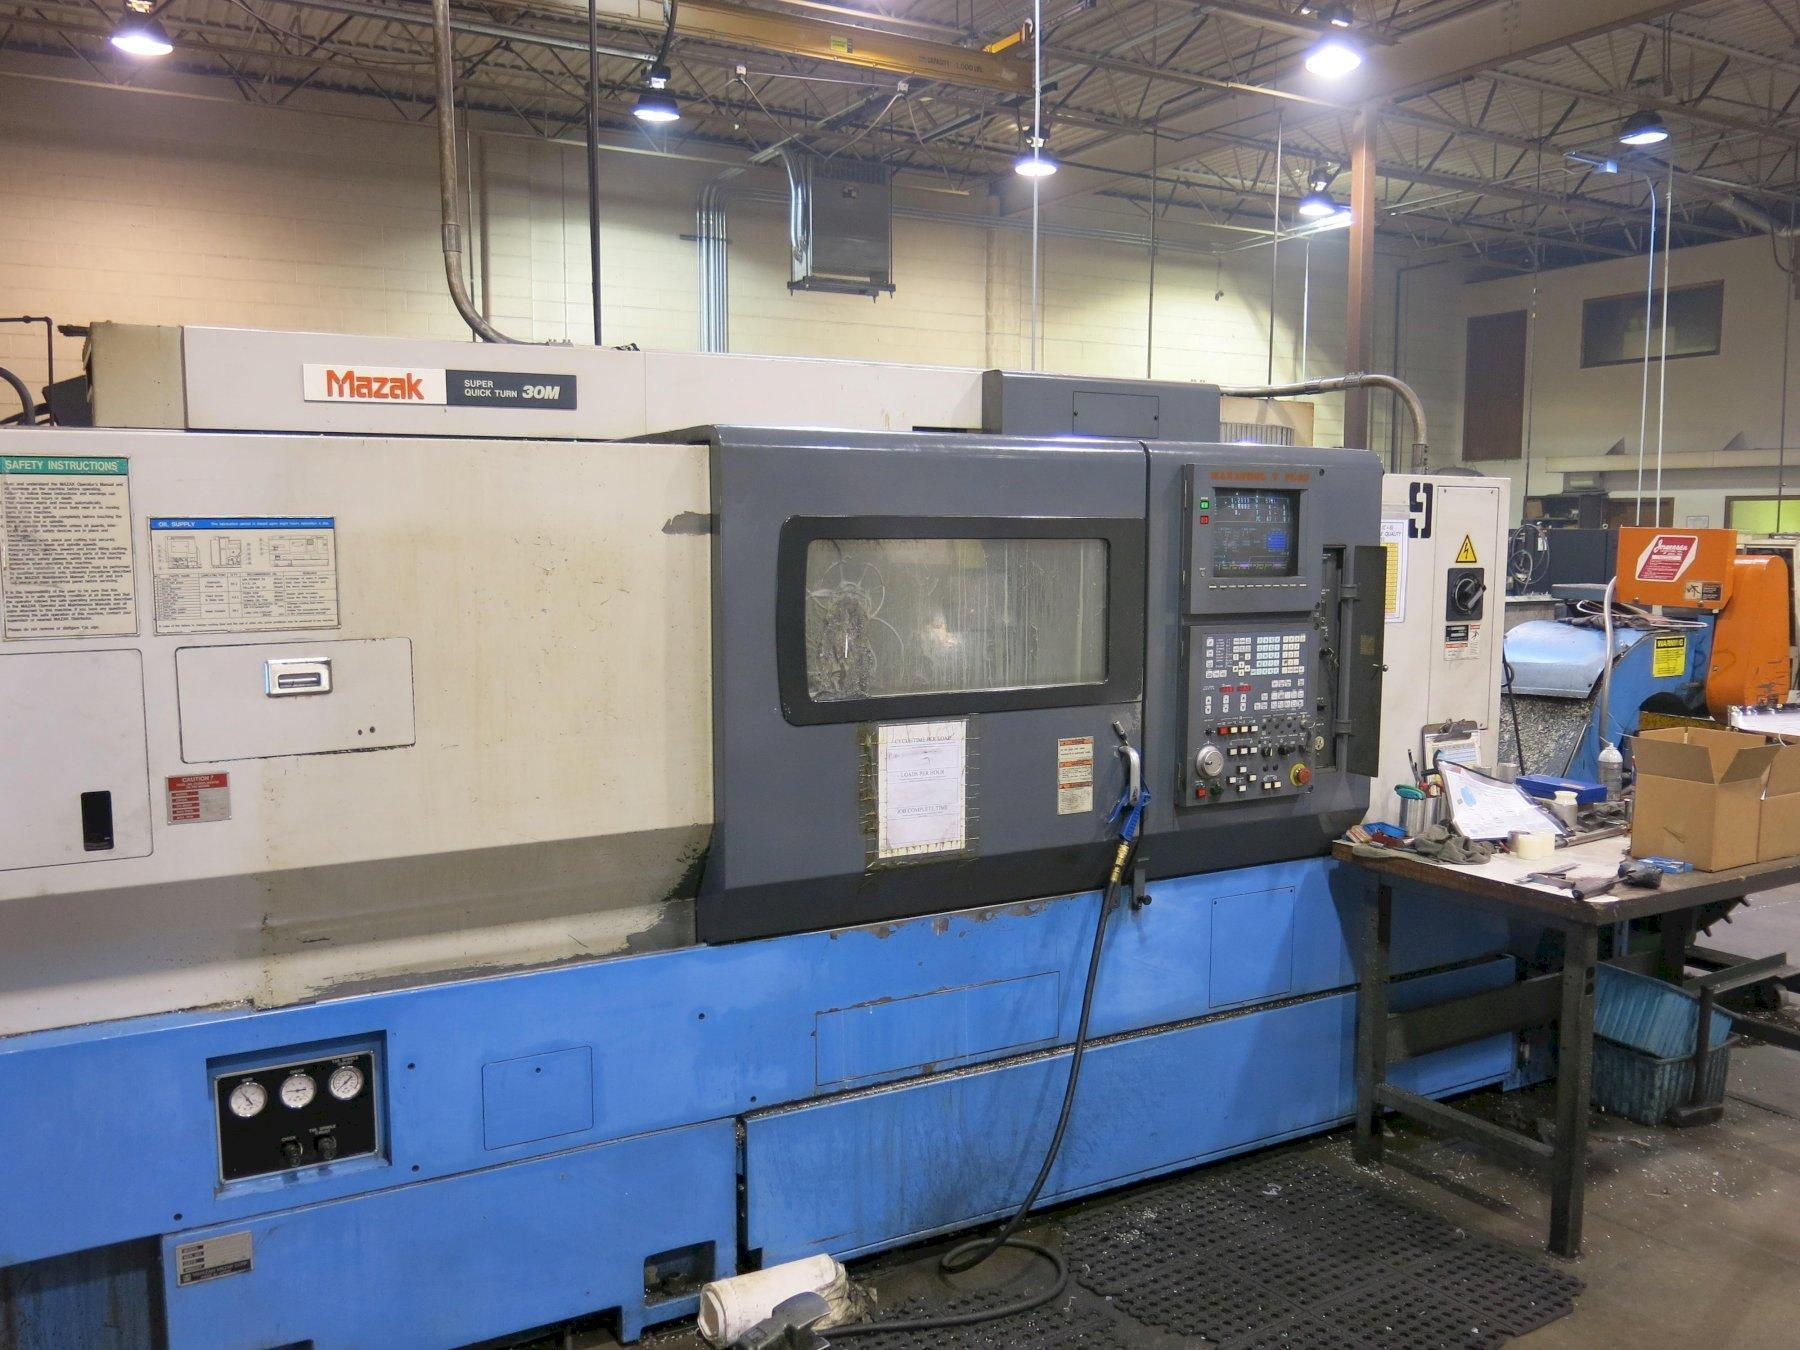 "Mazak Super Quick Turn 30M CNC Lathe, 12"" 3-Jaw Chuck, (Live Milling)  11 Positions Turret, Tailstock, 30 HP, New 1995"